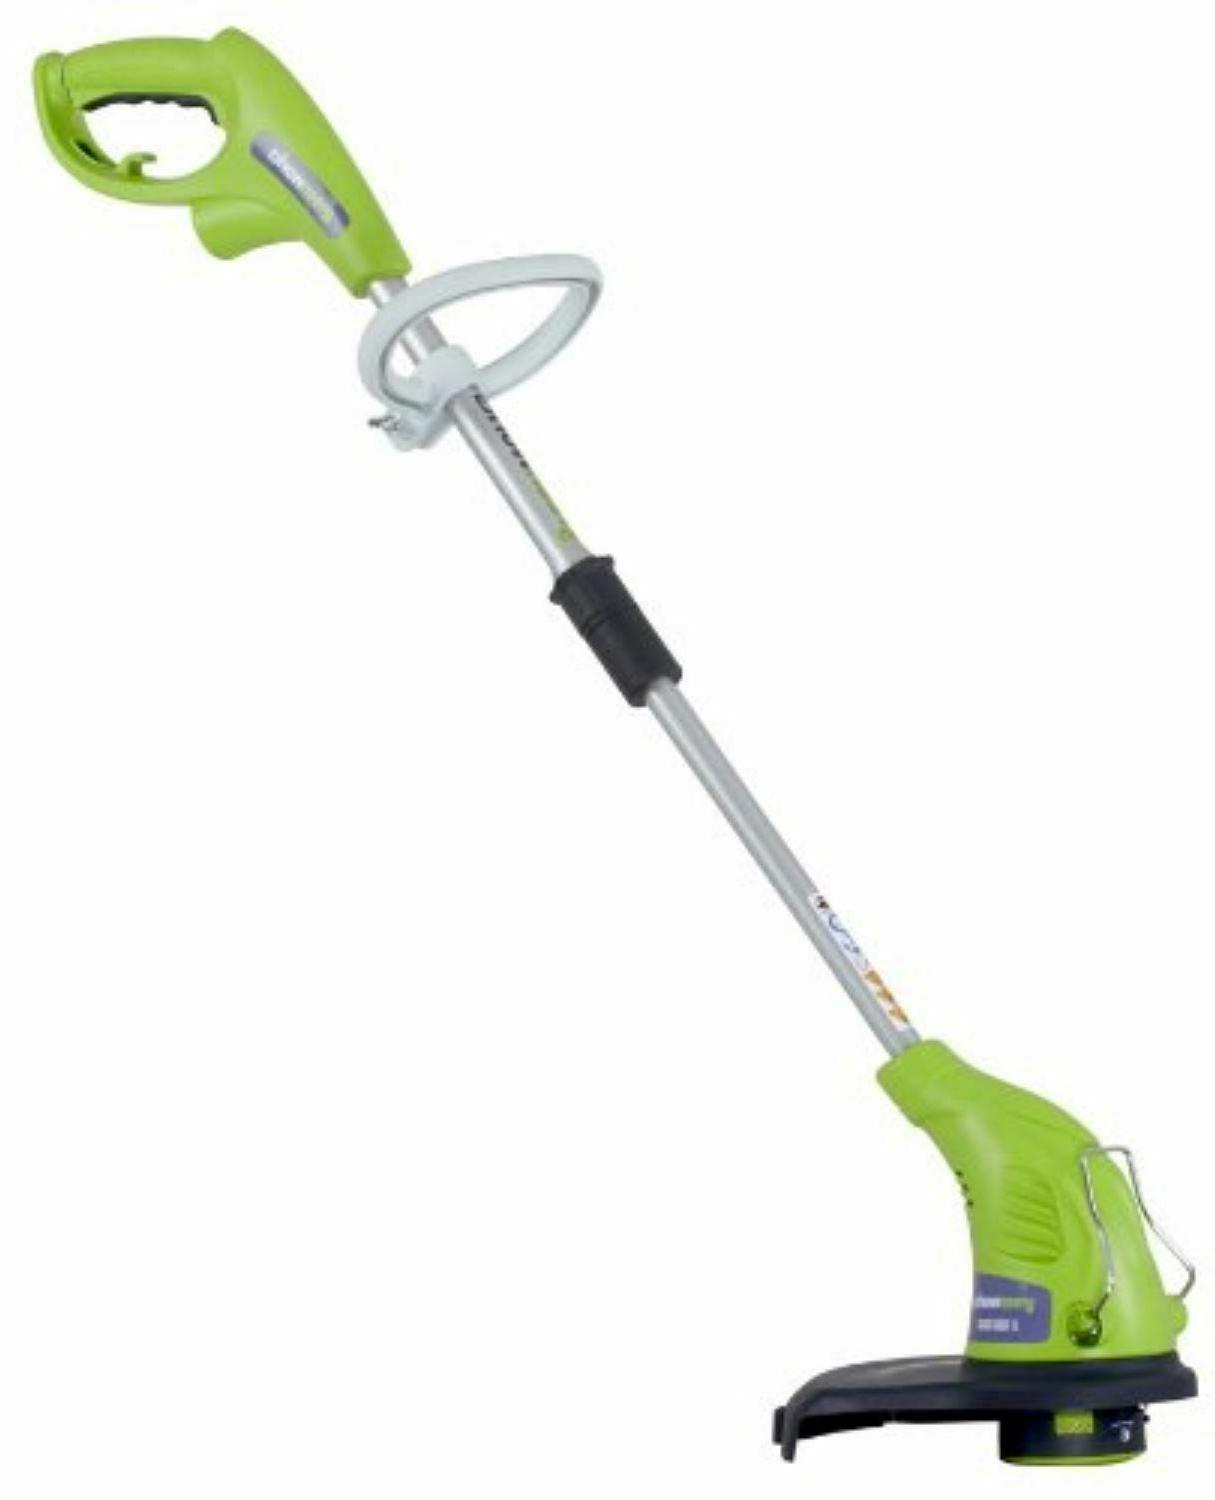 new string yard trimmer weed eater wacker